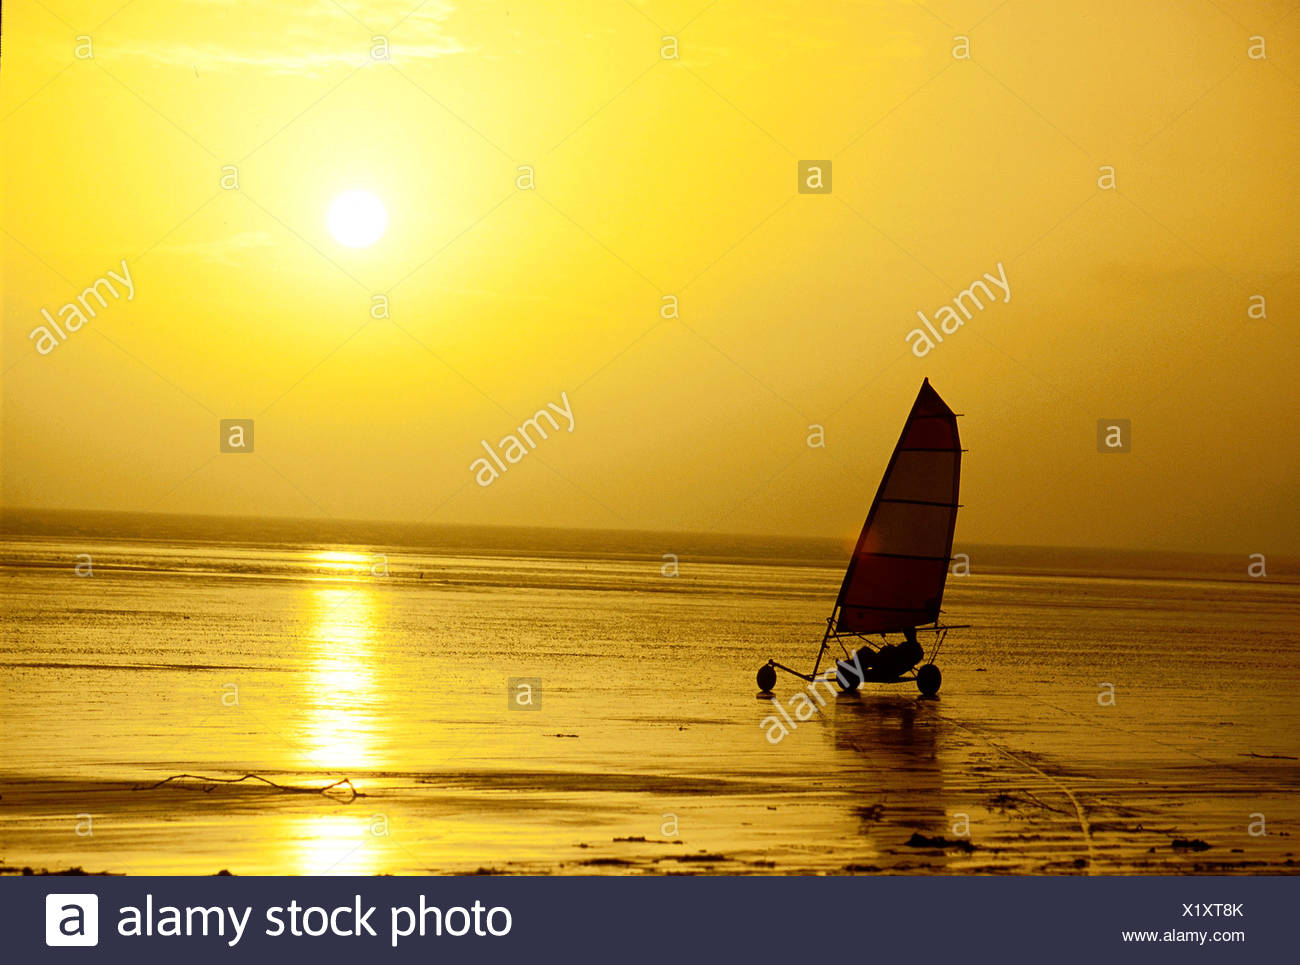 Land Yachting at sunset, view sea - Stock Image